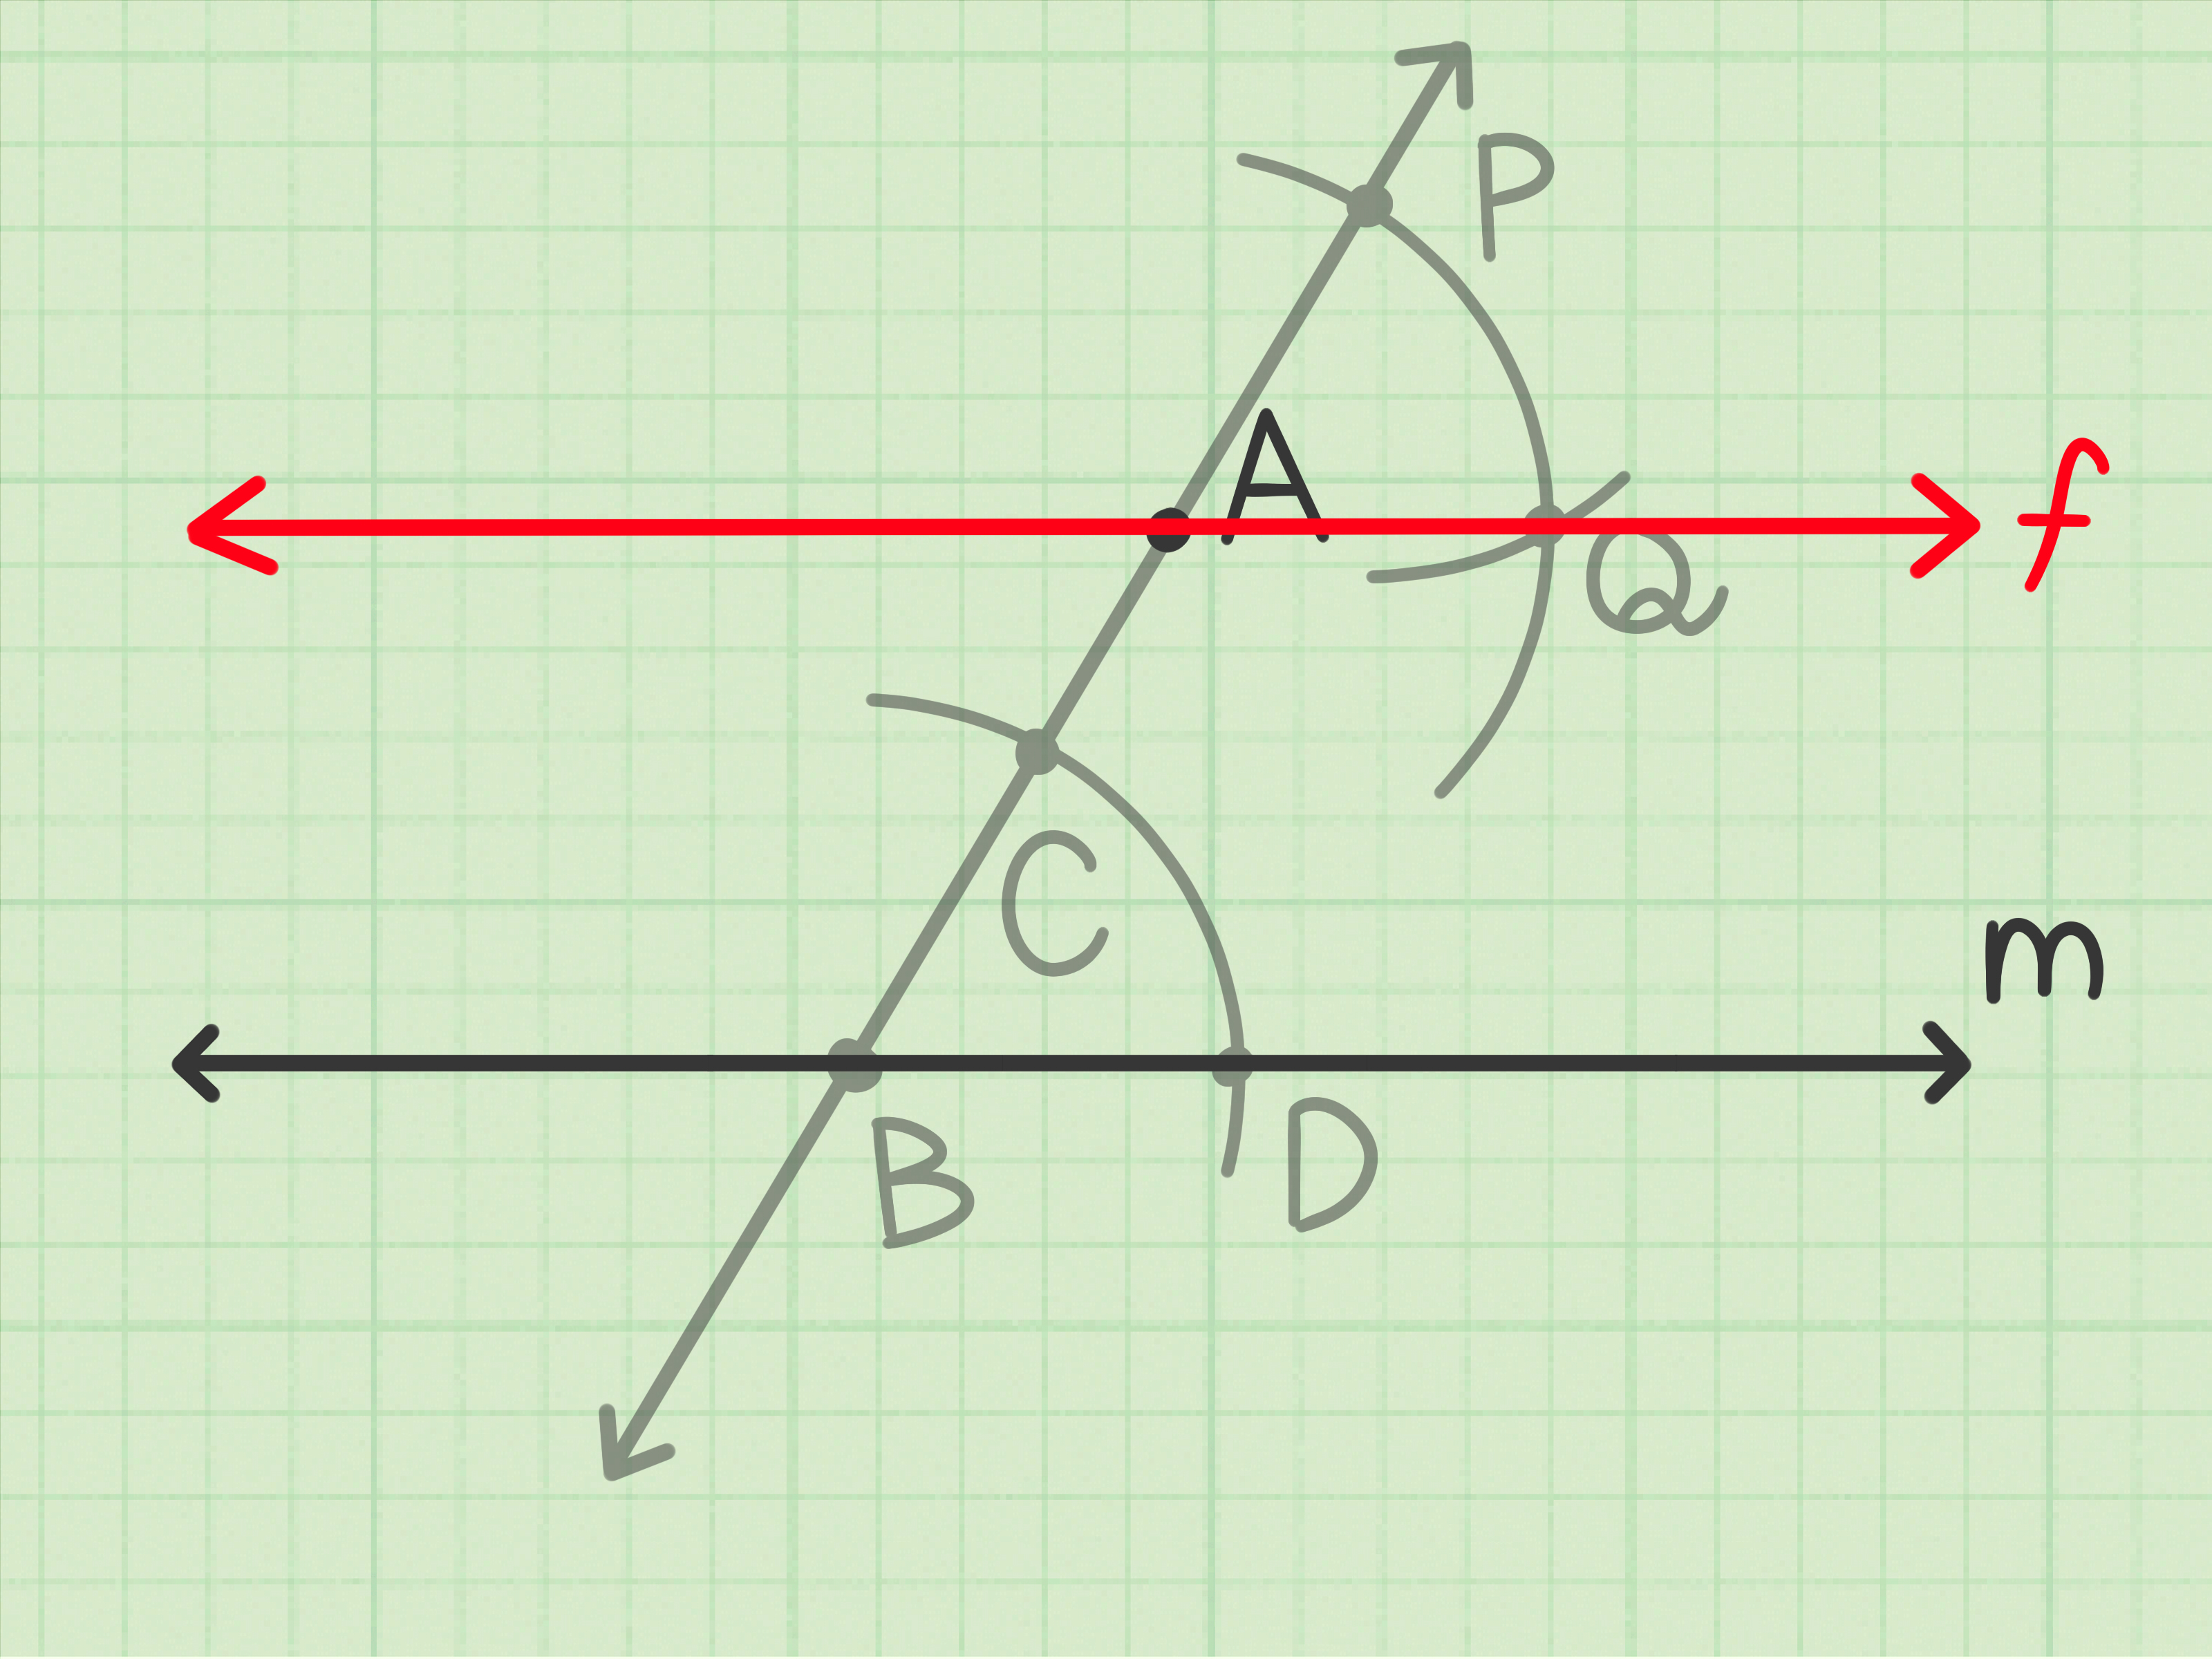 3 Ways To Construct A Line Parallel To A Given Line